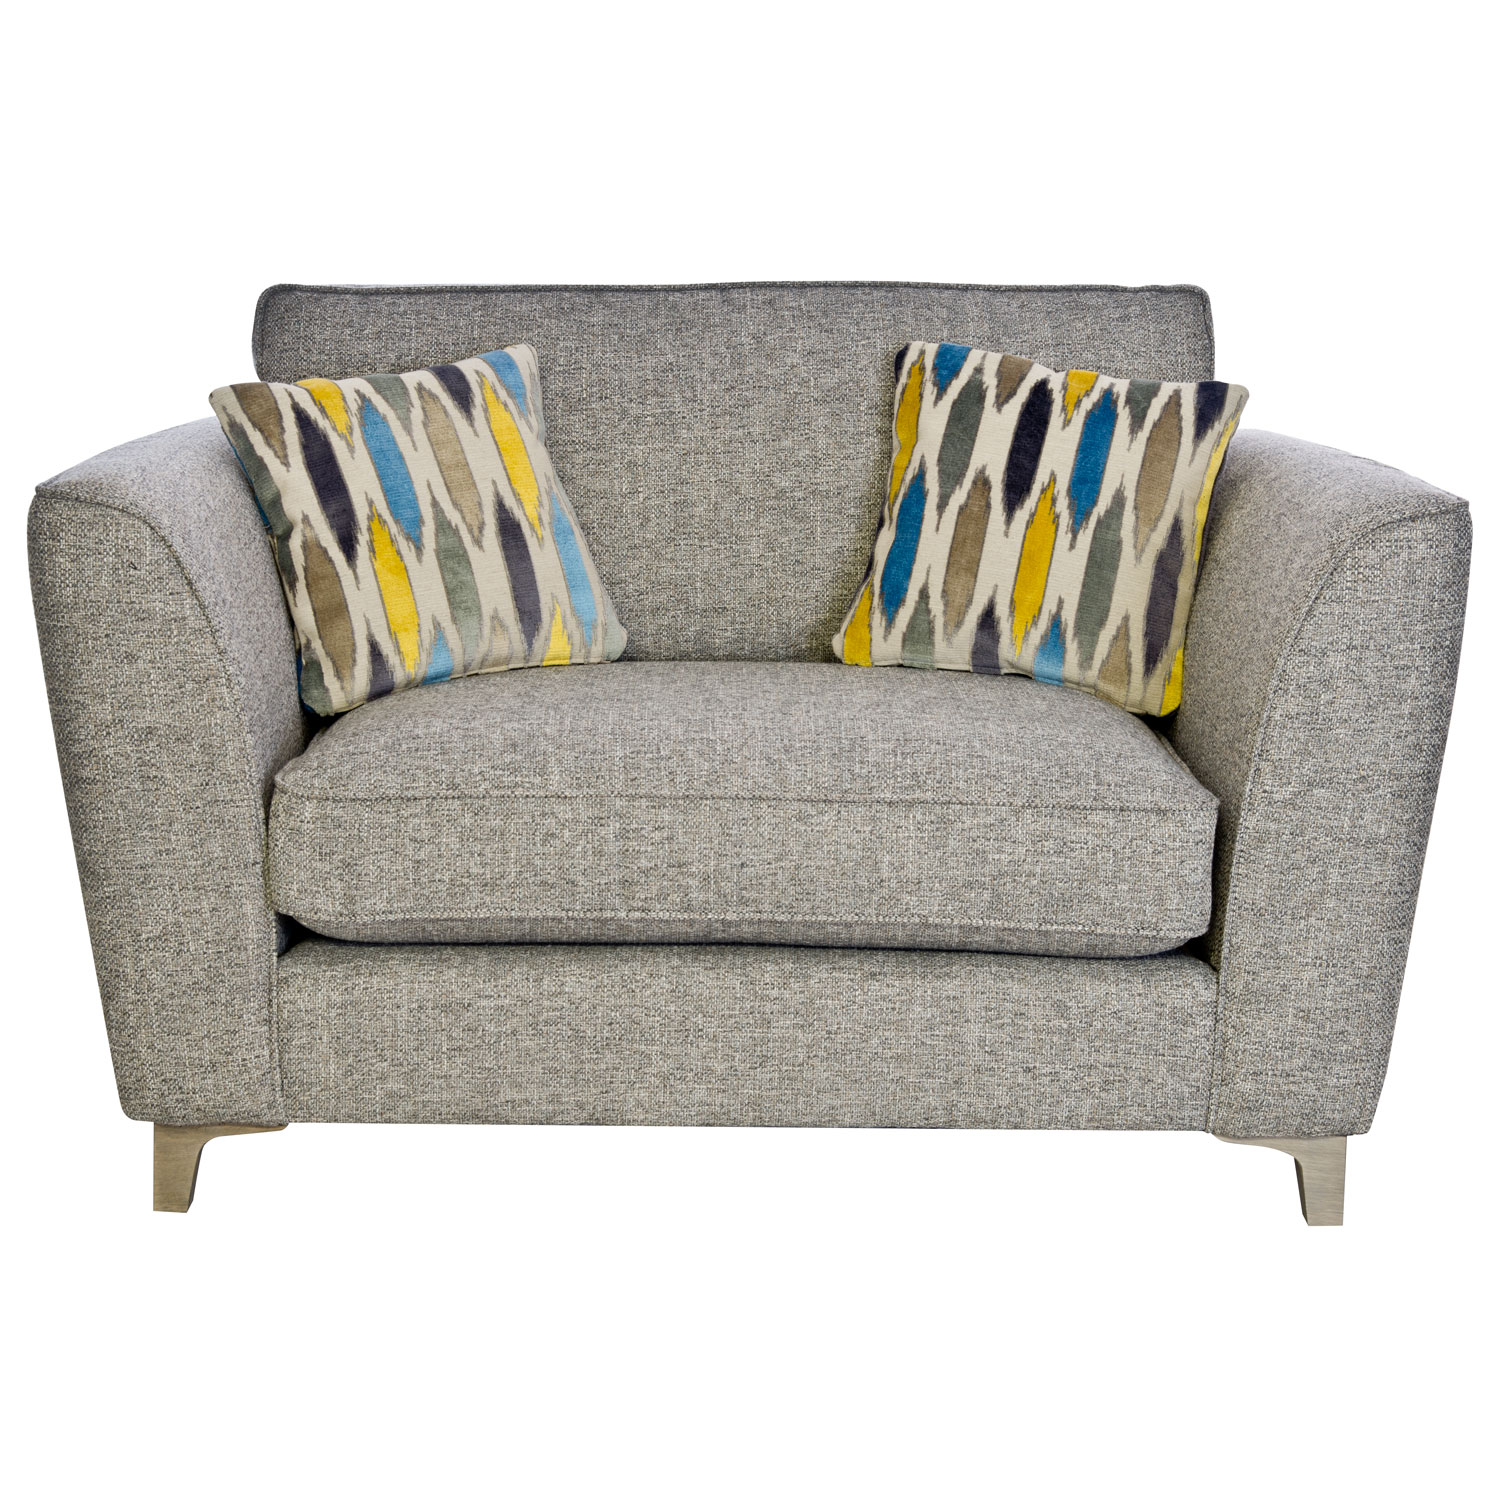 Casa Lacey Snuggler Chair